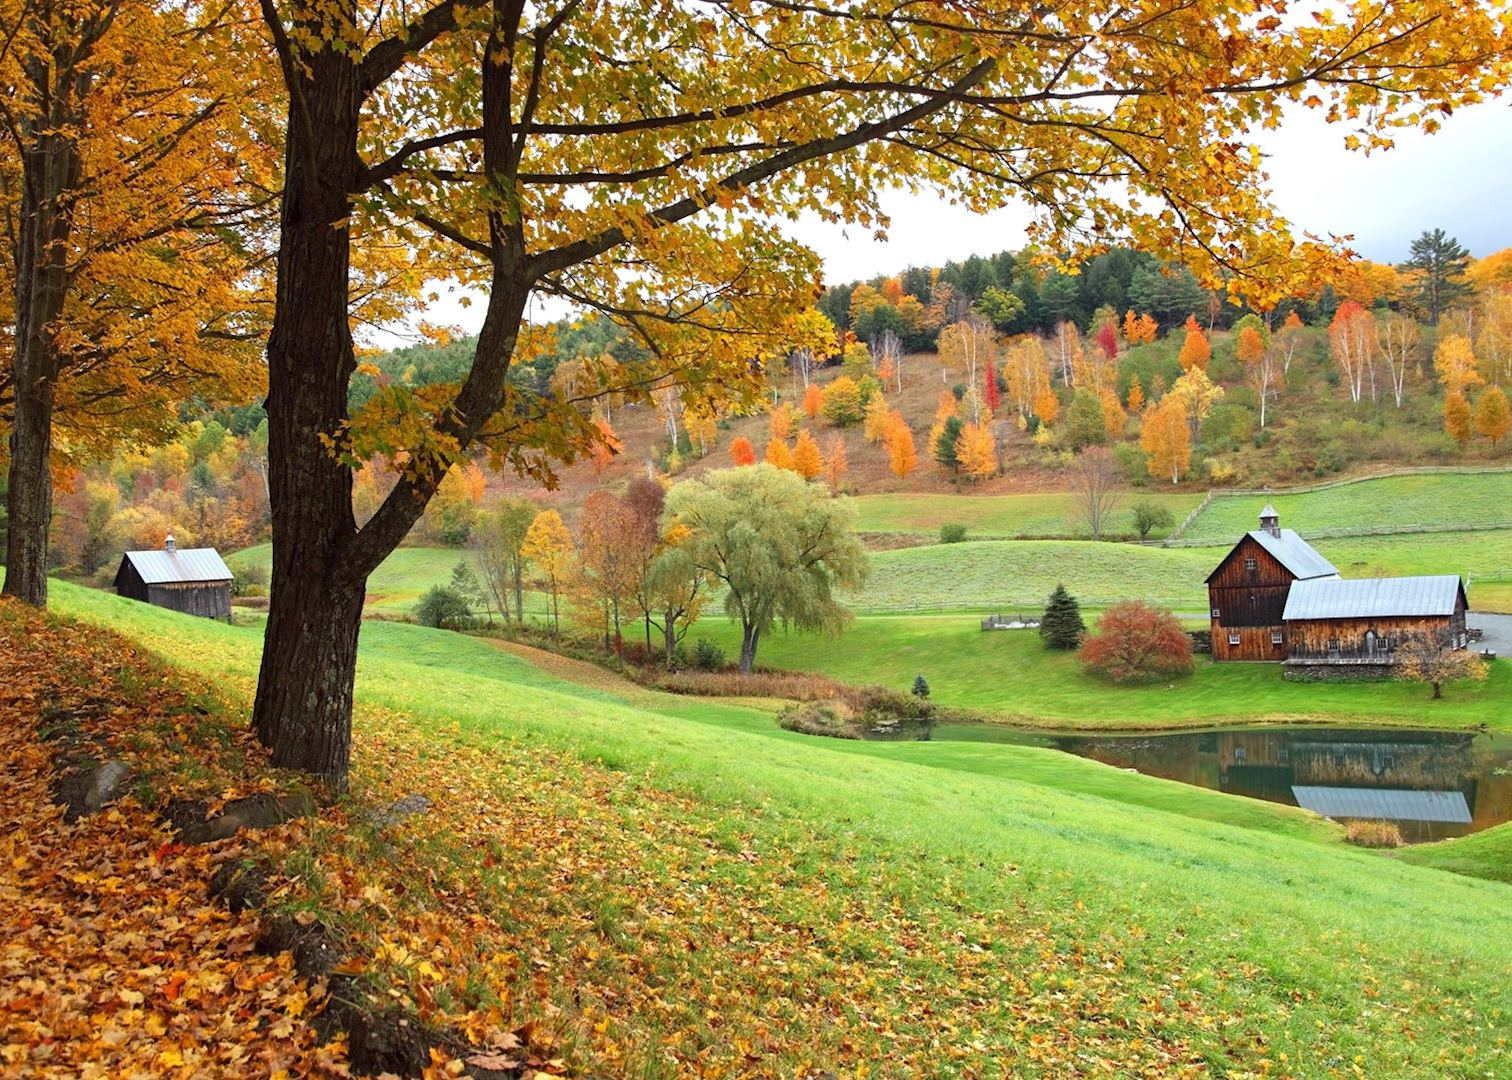 New England Fall Desktop Wallpaper Visit Woodstock On A Trip To New England Audley Travel